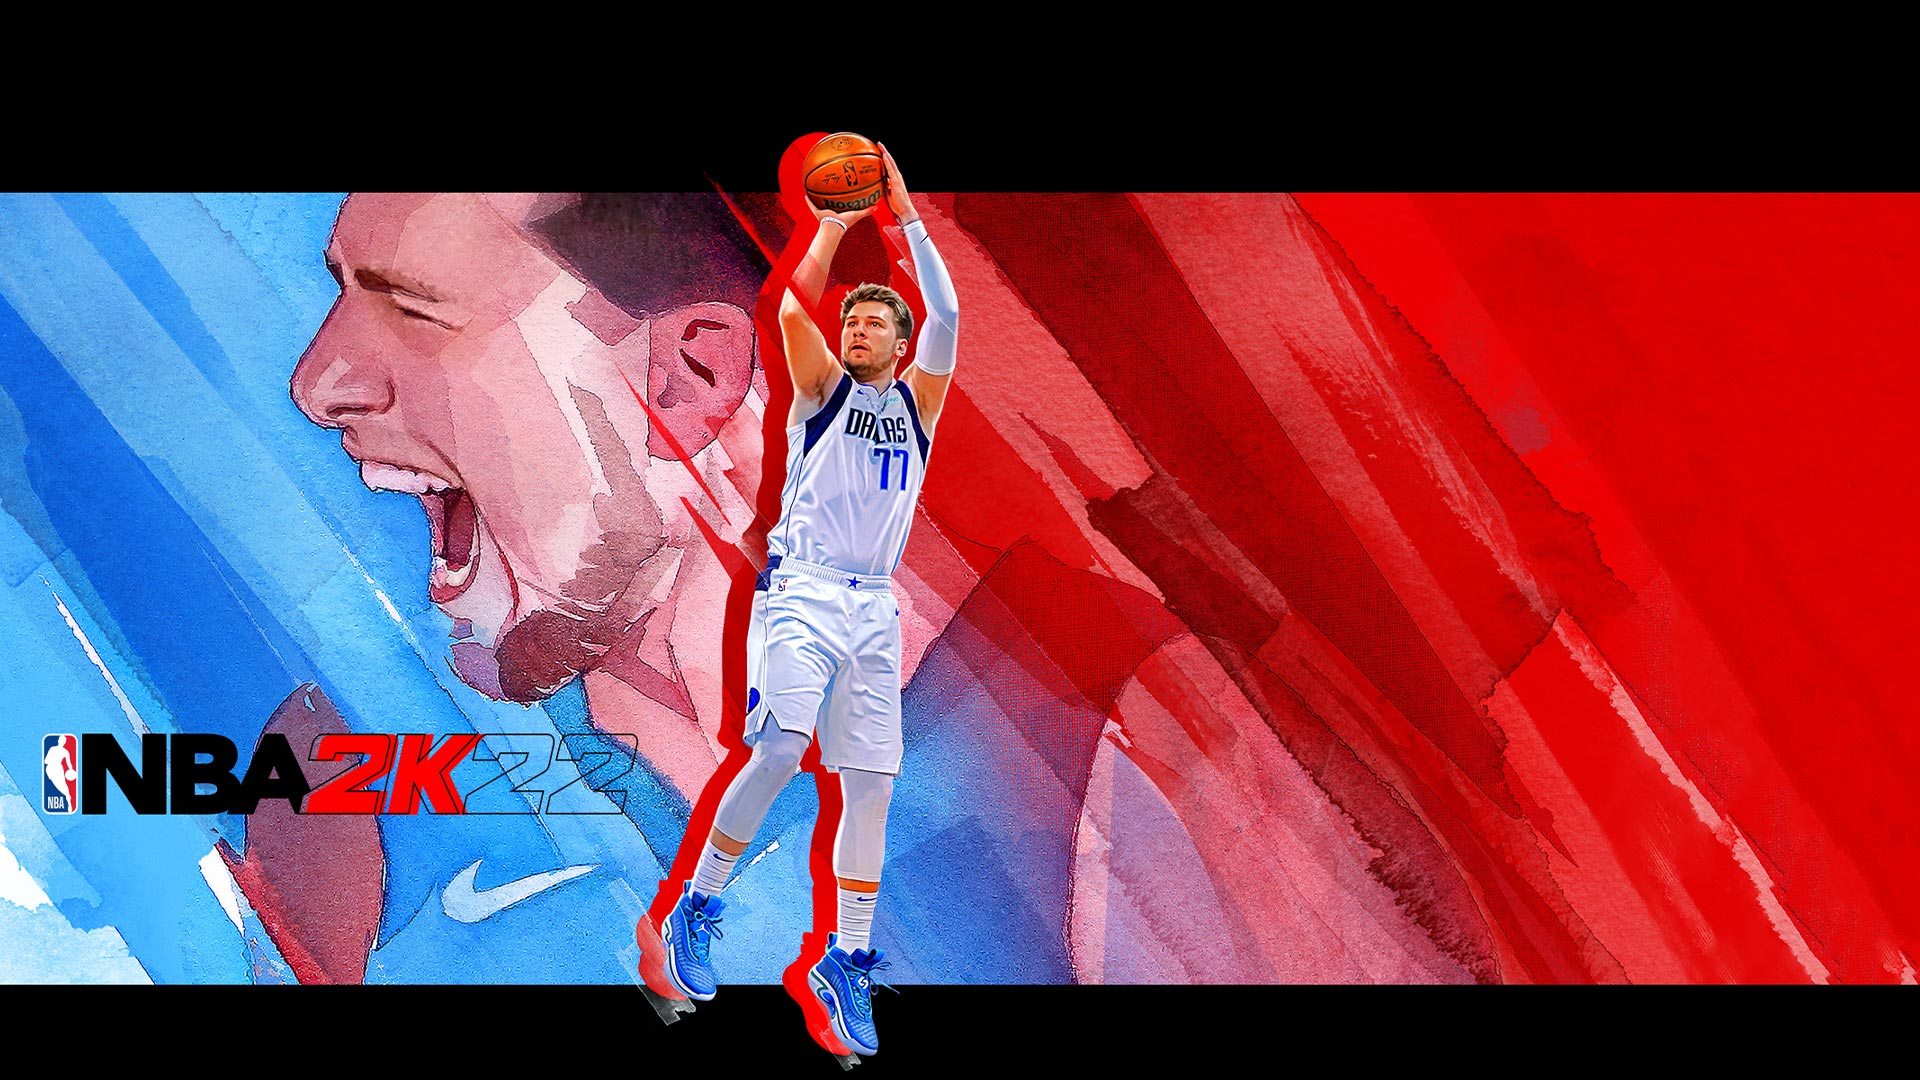 NBA 2K22, Luca Doncic leaps into the air with a basketball in front of a painting of him yelling in celebration.